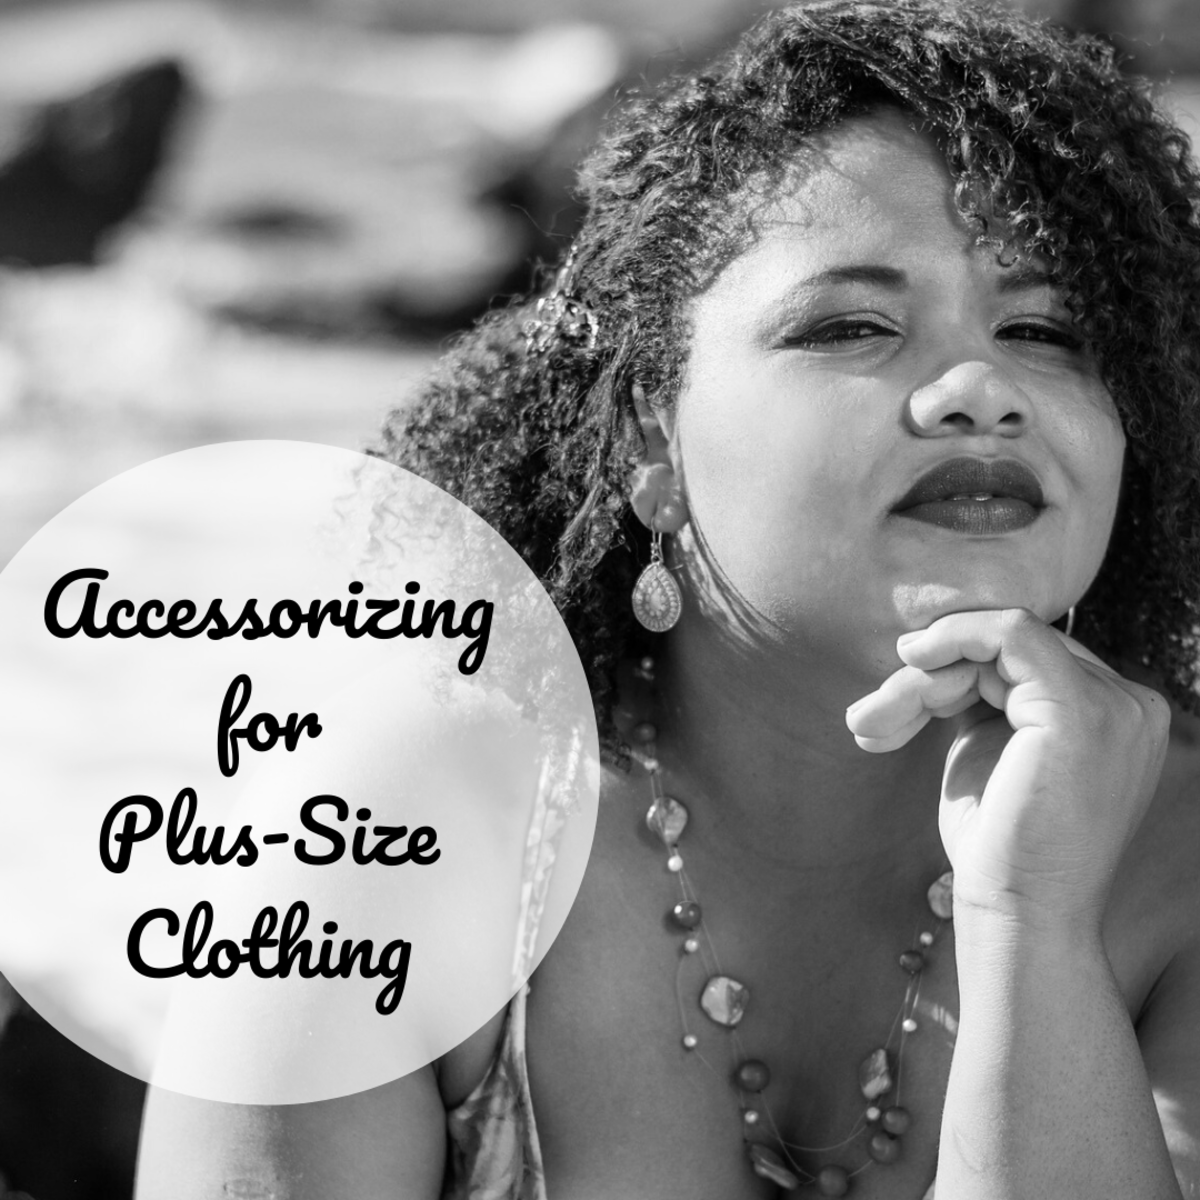 How to Accessorize Plus-Size Clothing